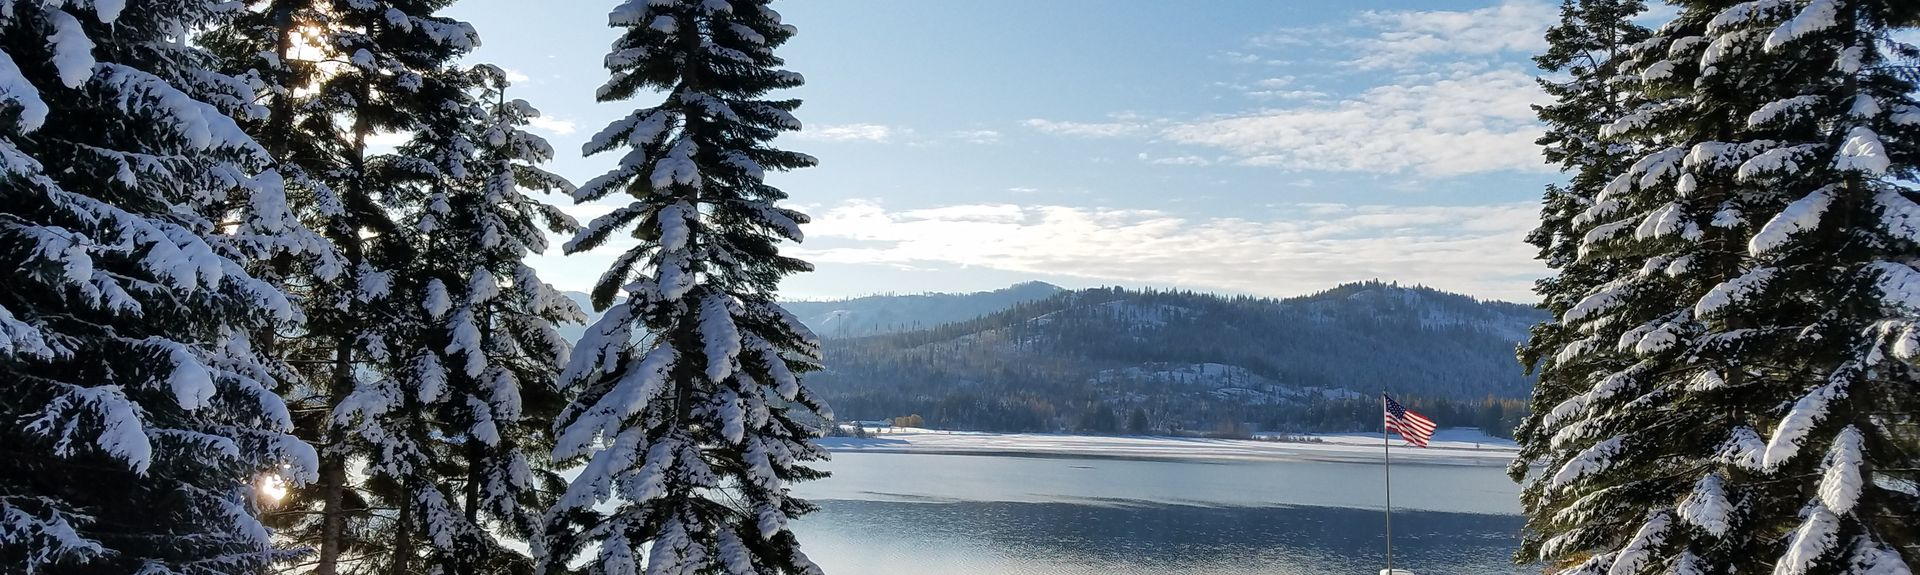 Lake Pend Oreille, Idaho, USA